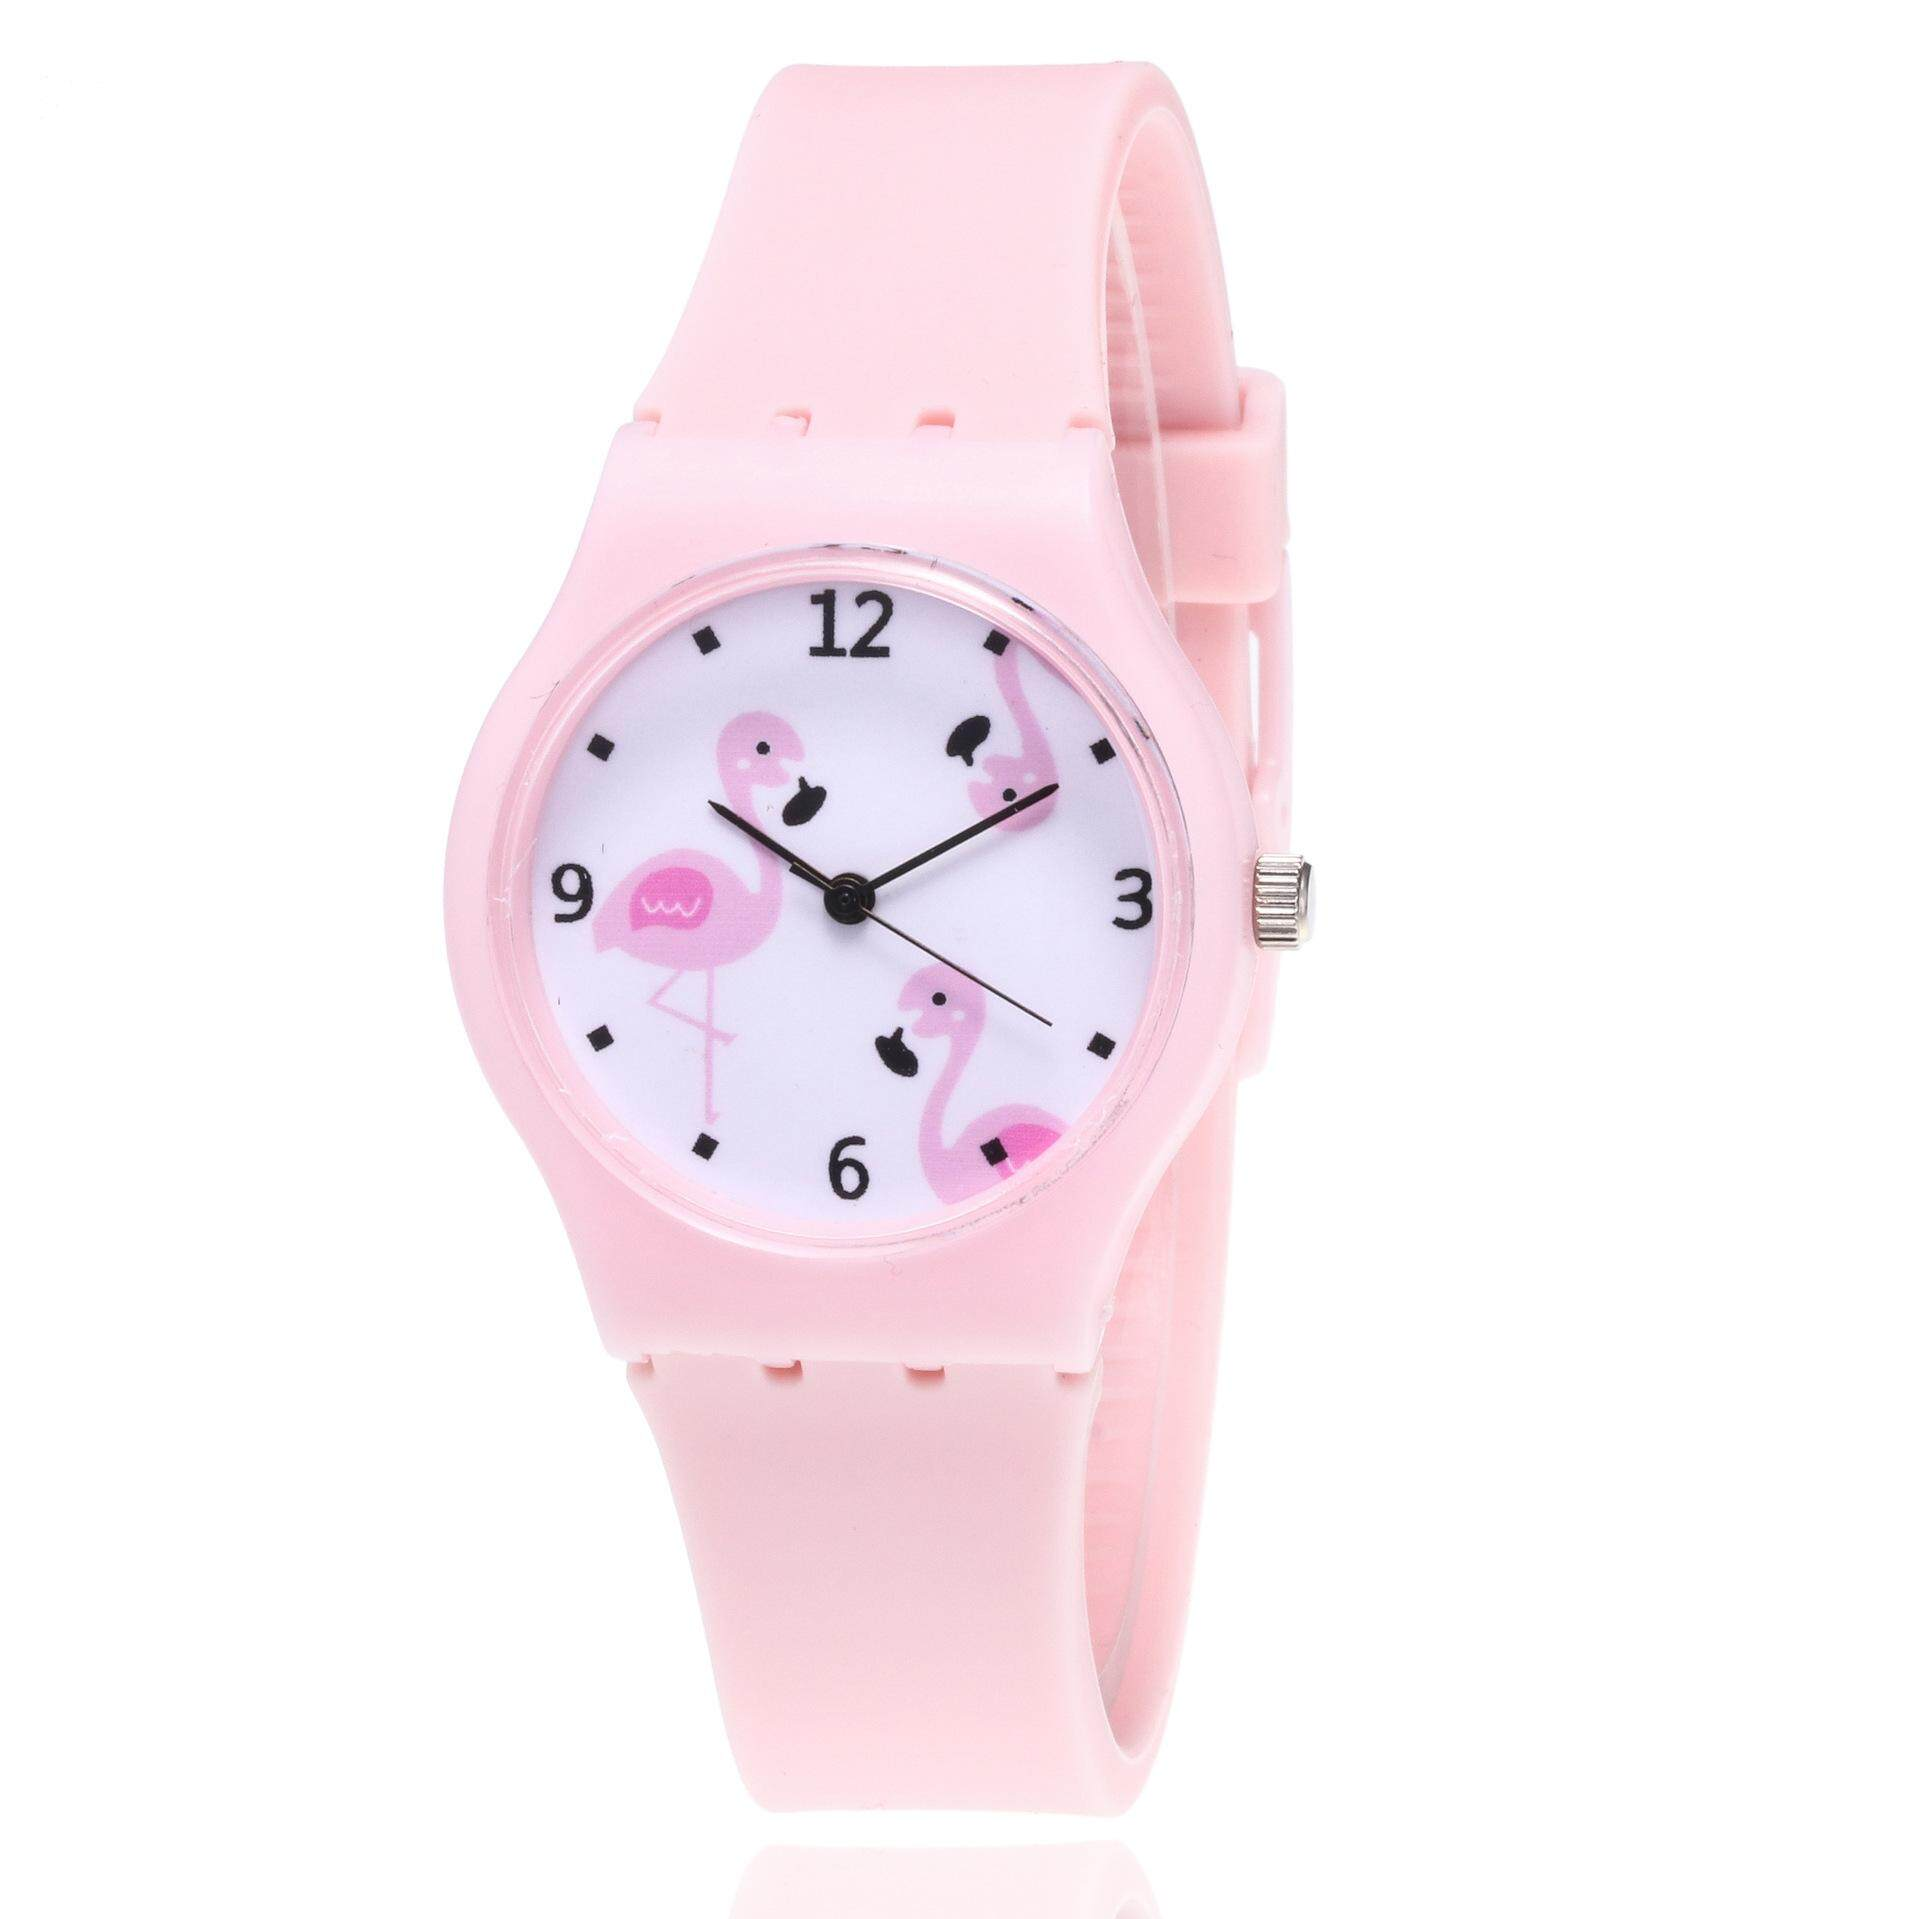 2019 new kid watch cute cartoon animal flamingo design silicone band candy color strap quartz wristwatch she will be loved SLWKI08 Malaysia